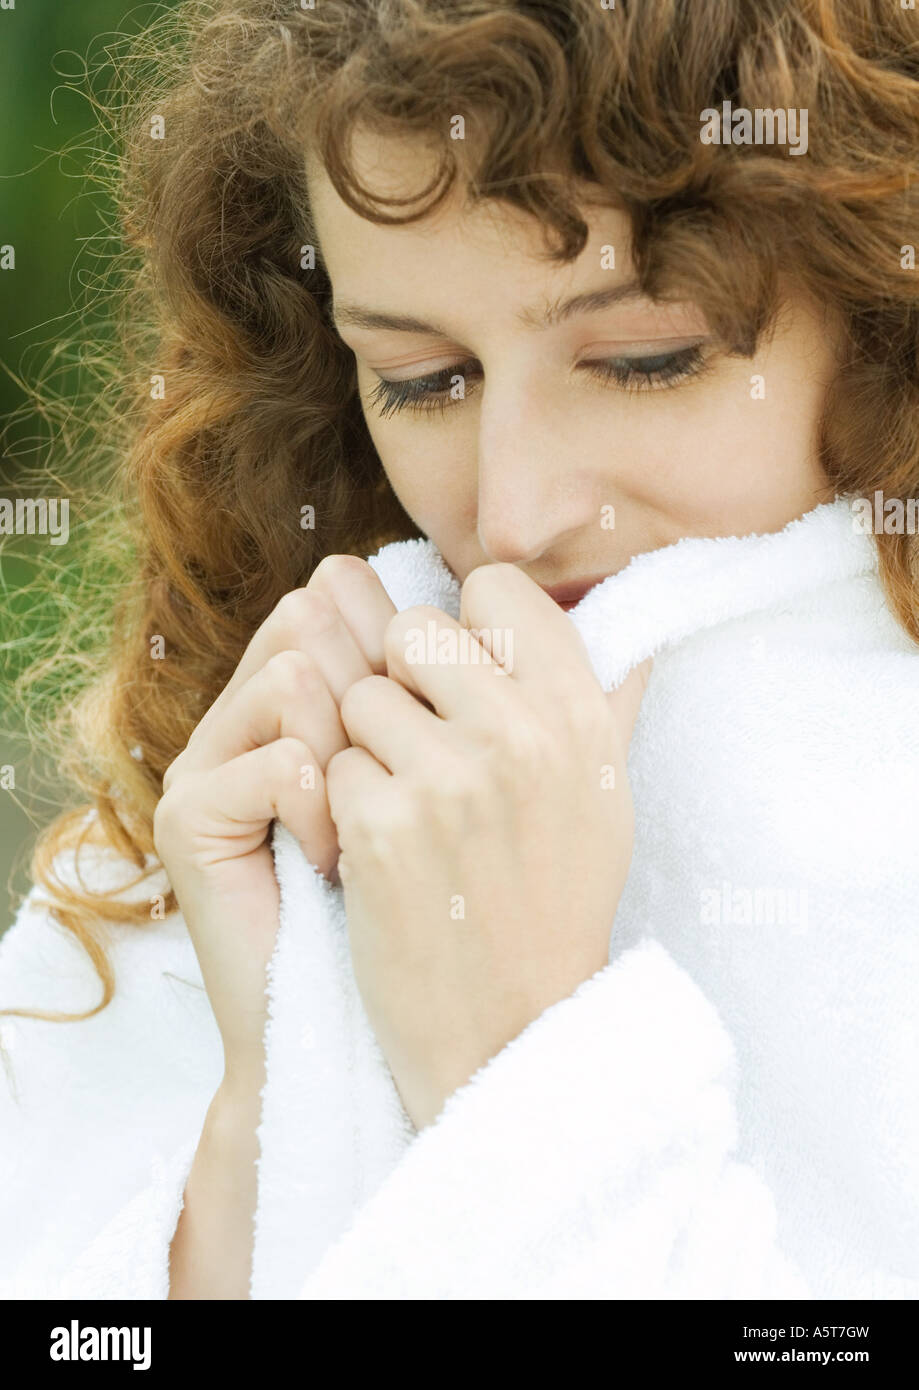 Woman wearing bathrobe, holding up edges of collar - Stock Image